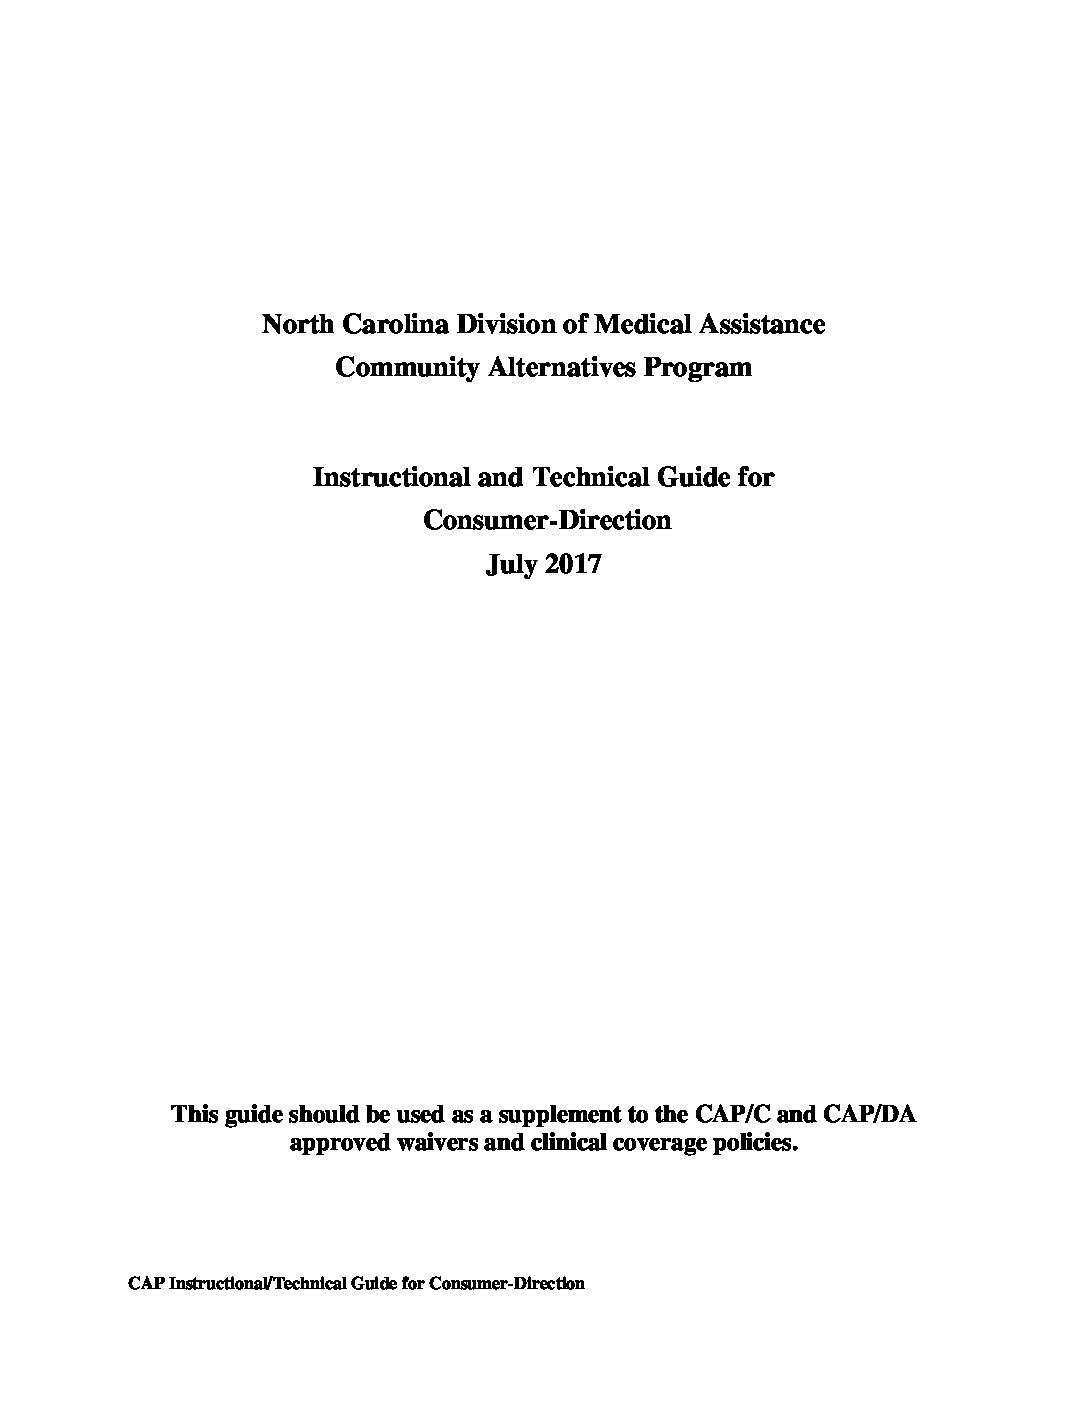 North Carolina's Community Alternatives Program: Instructional & Technical Guide for Consumer-Direction